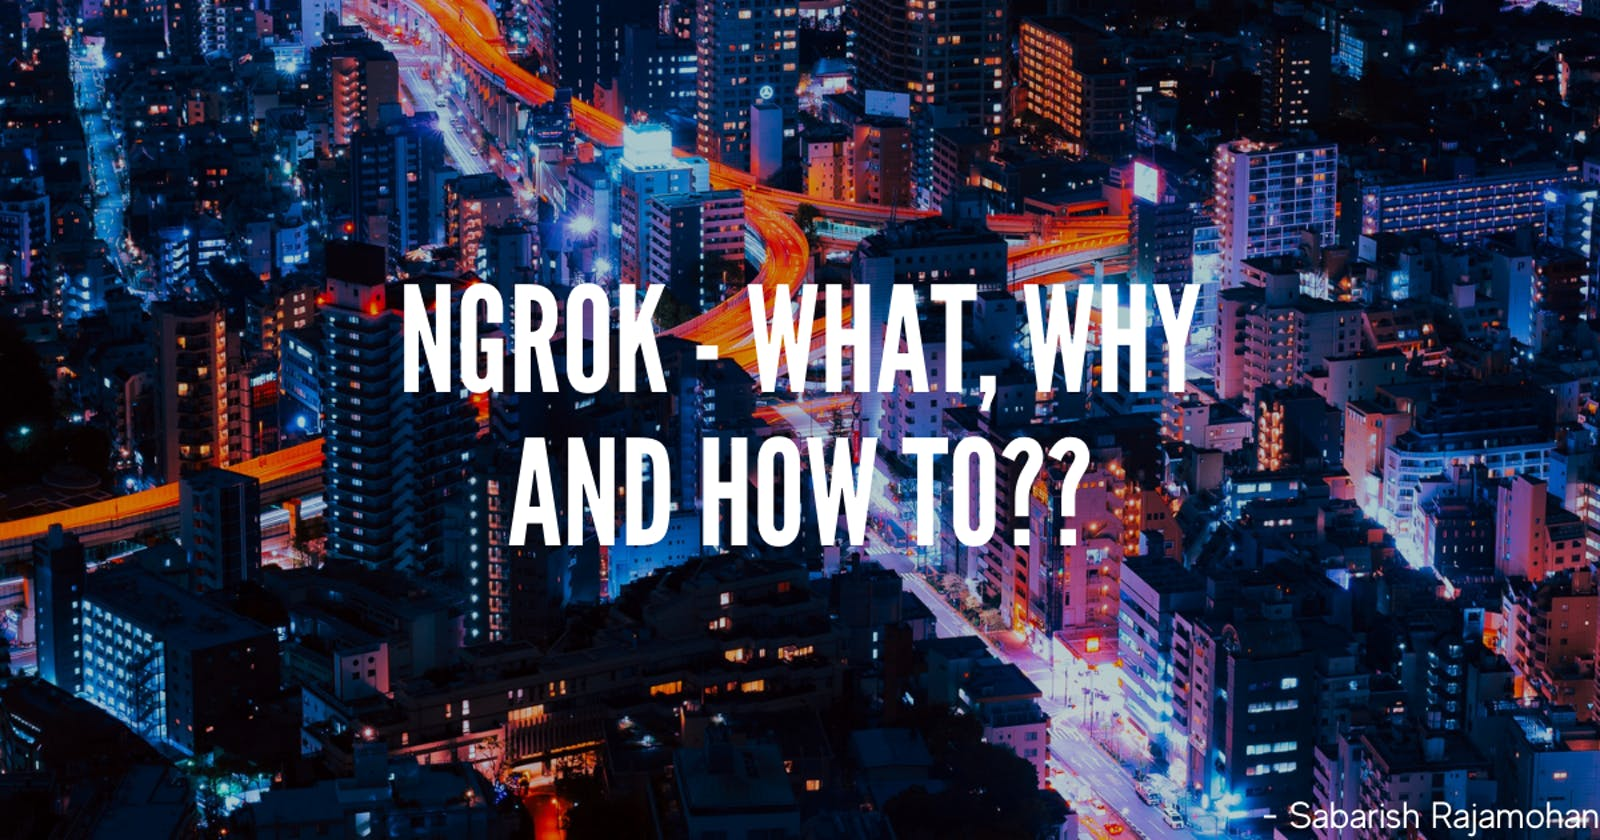 Tunneling using Ngrok - What, Why, and How to?